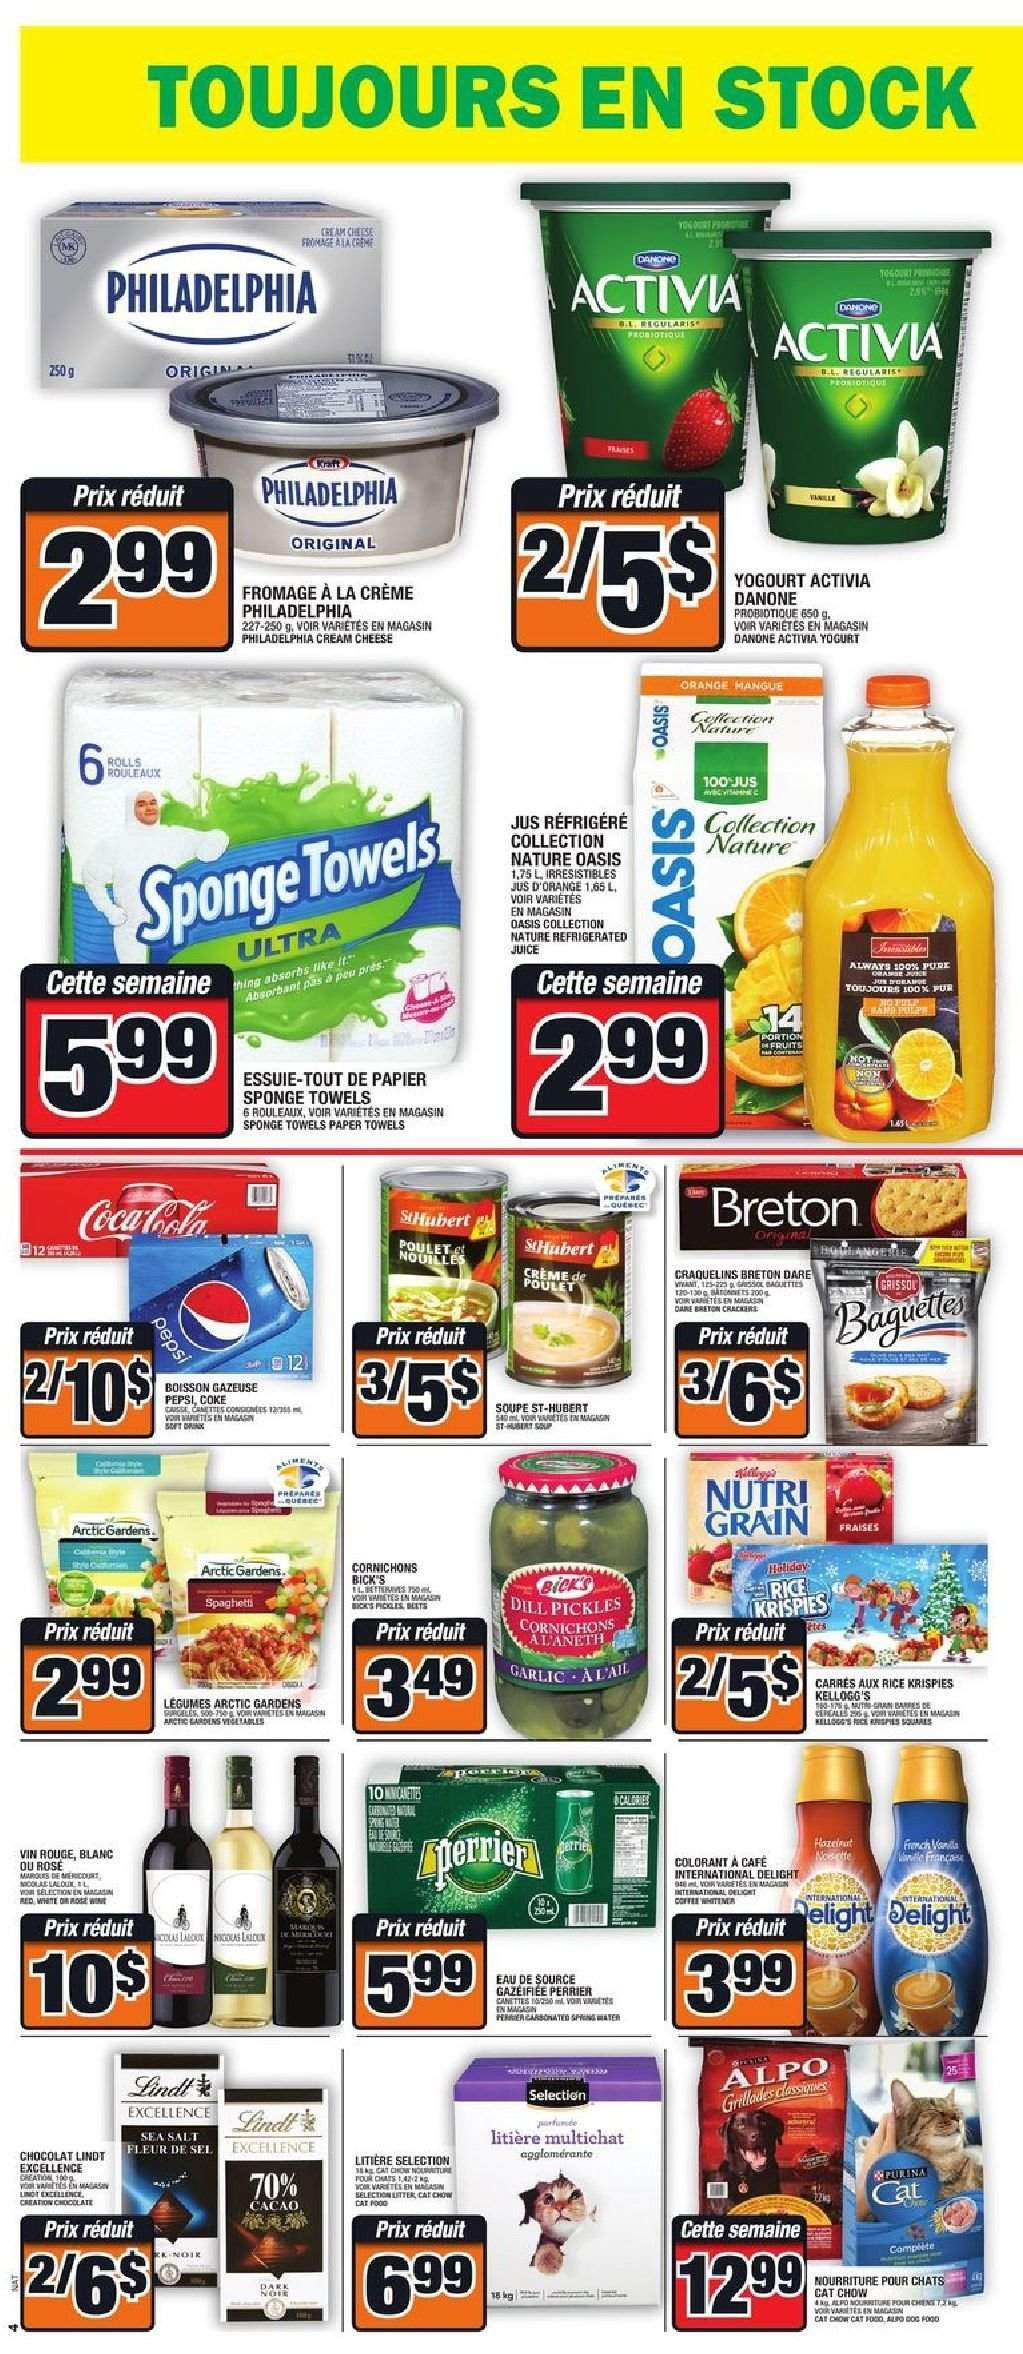 Super C Flyer - November 22, 2018 - November 28, 2018 - Sales products - coca cola, cream, cream cheese, crème, dill, garlic, rice, towel, yogurt, philadelphia, pickles, paper towel, pepsi, cheese, juice, sponge, danone, lindt, poulet, chocolat, cafe, activia, boisson, cacao, cornichon, eau, fleur, fromage, vin rouge, soupe, jus d'orange, kellogg's, sel, perrier, jus, vin. Page 4.